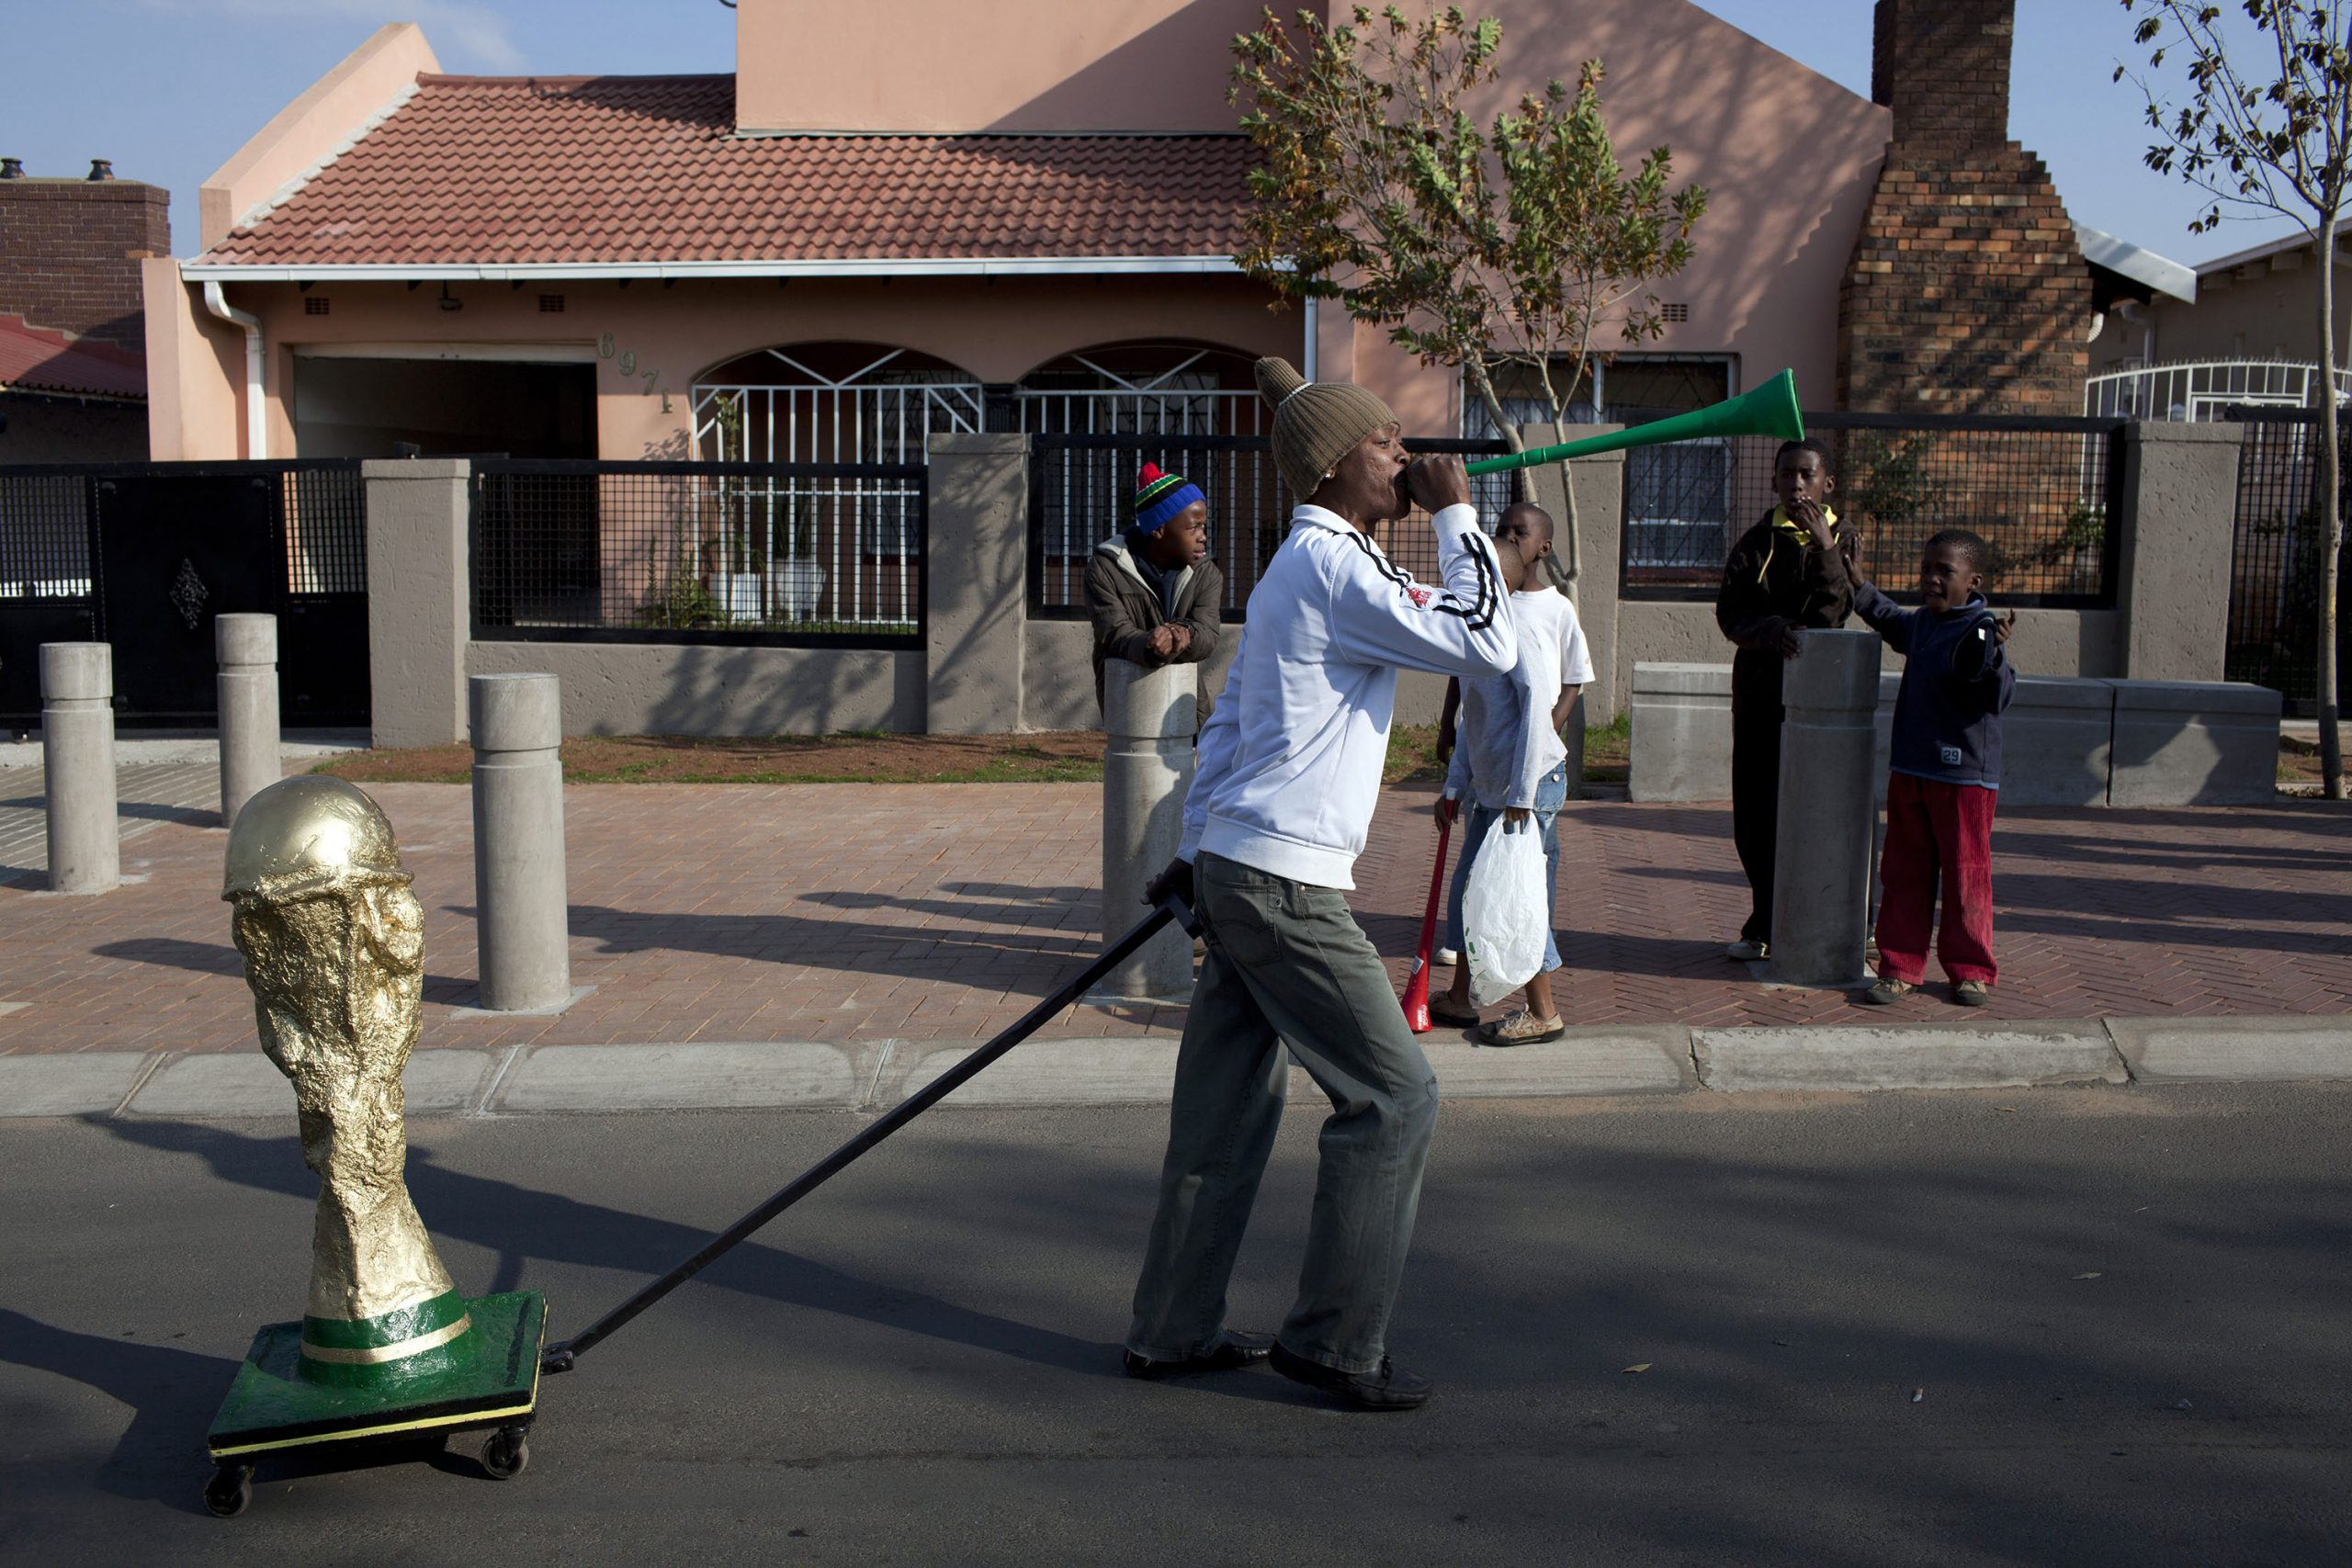 11 June 2010: A man pulls a cart with a homemade Fifa World Cup trophy on Vilakazi Street in Orlando, Soweto, as residents and visitors celebrate in the streets at the start of the tournament. (Photograph by Per-Anders Pettersson/ Getty Images)